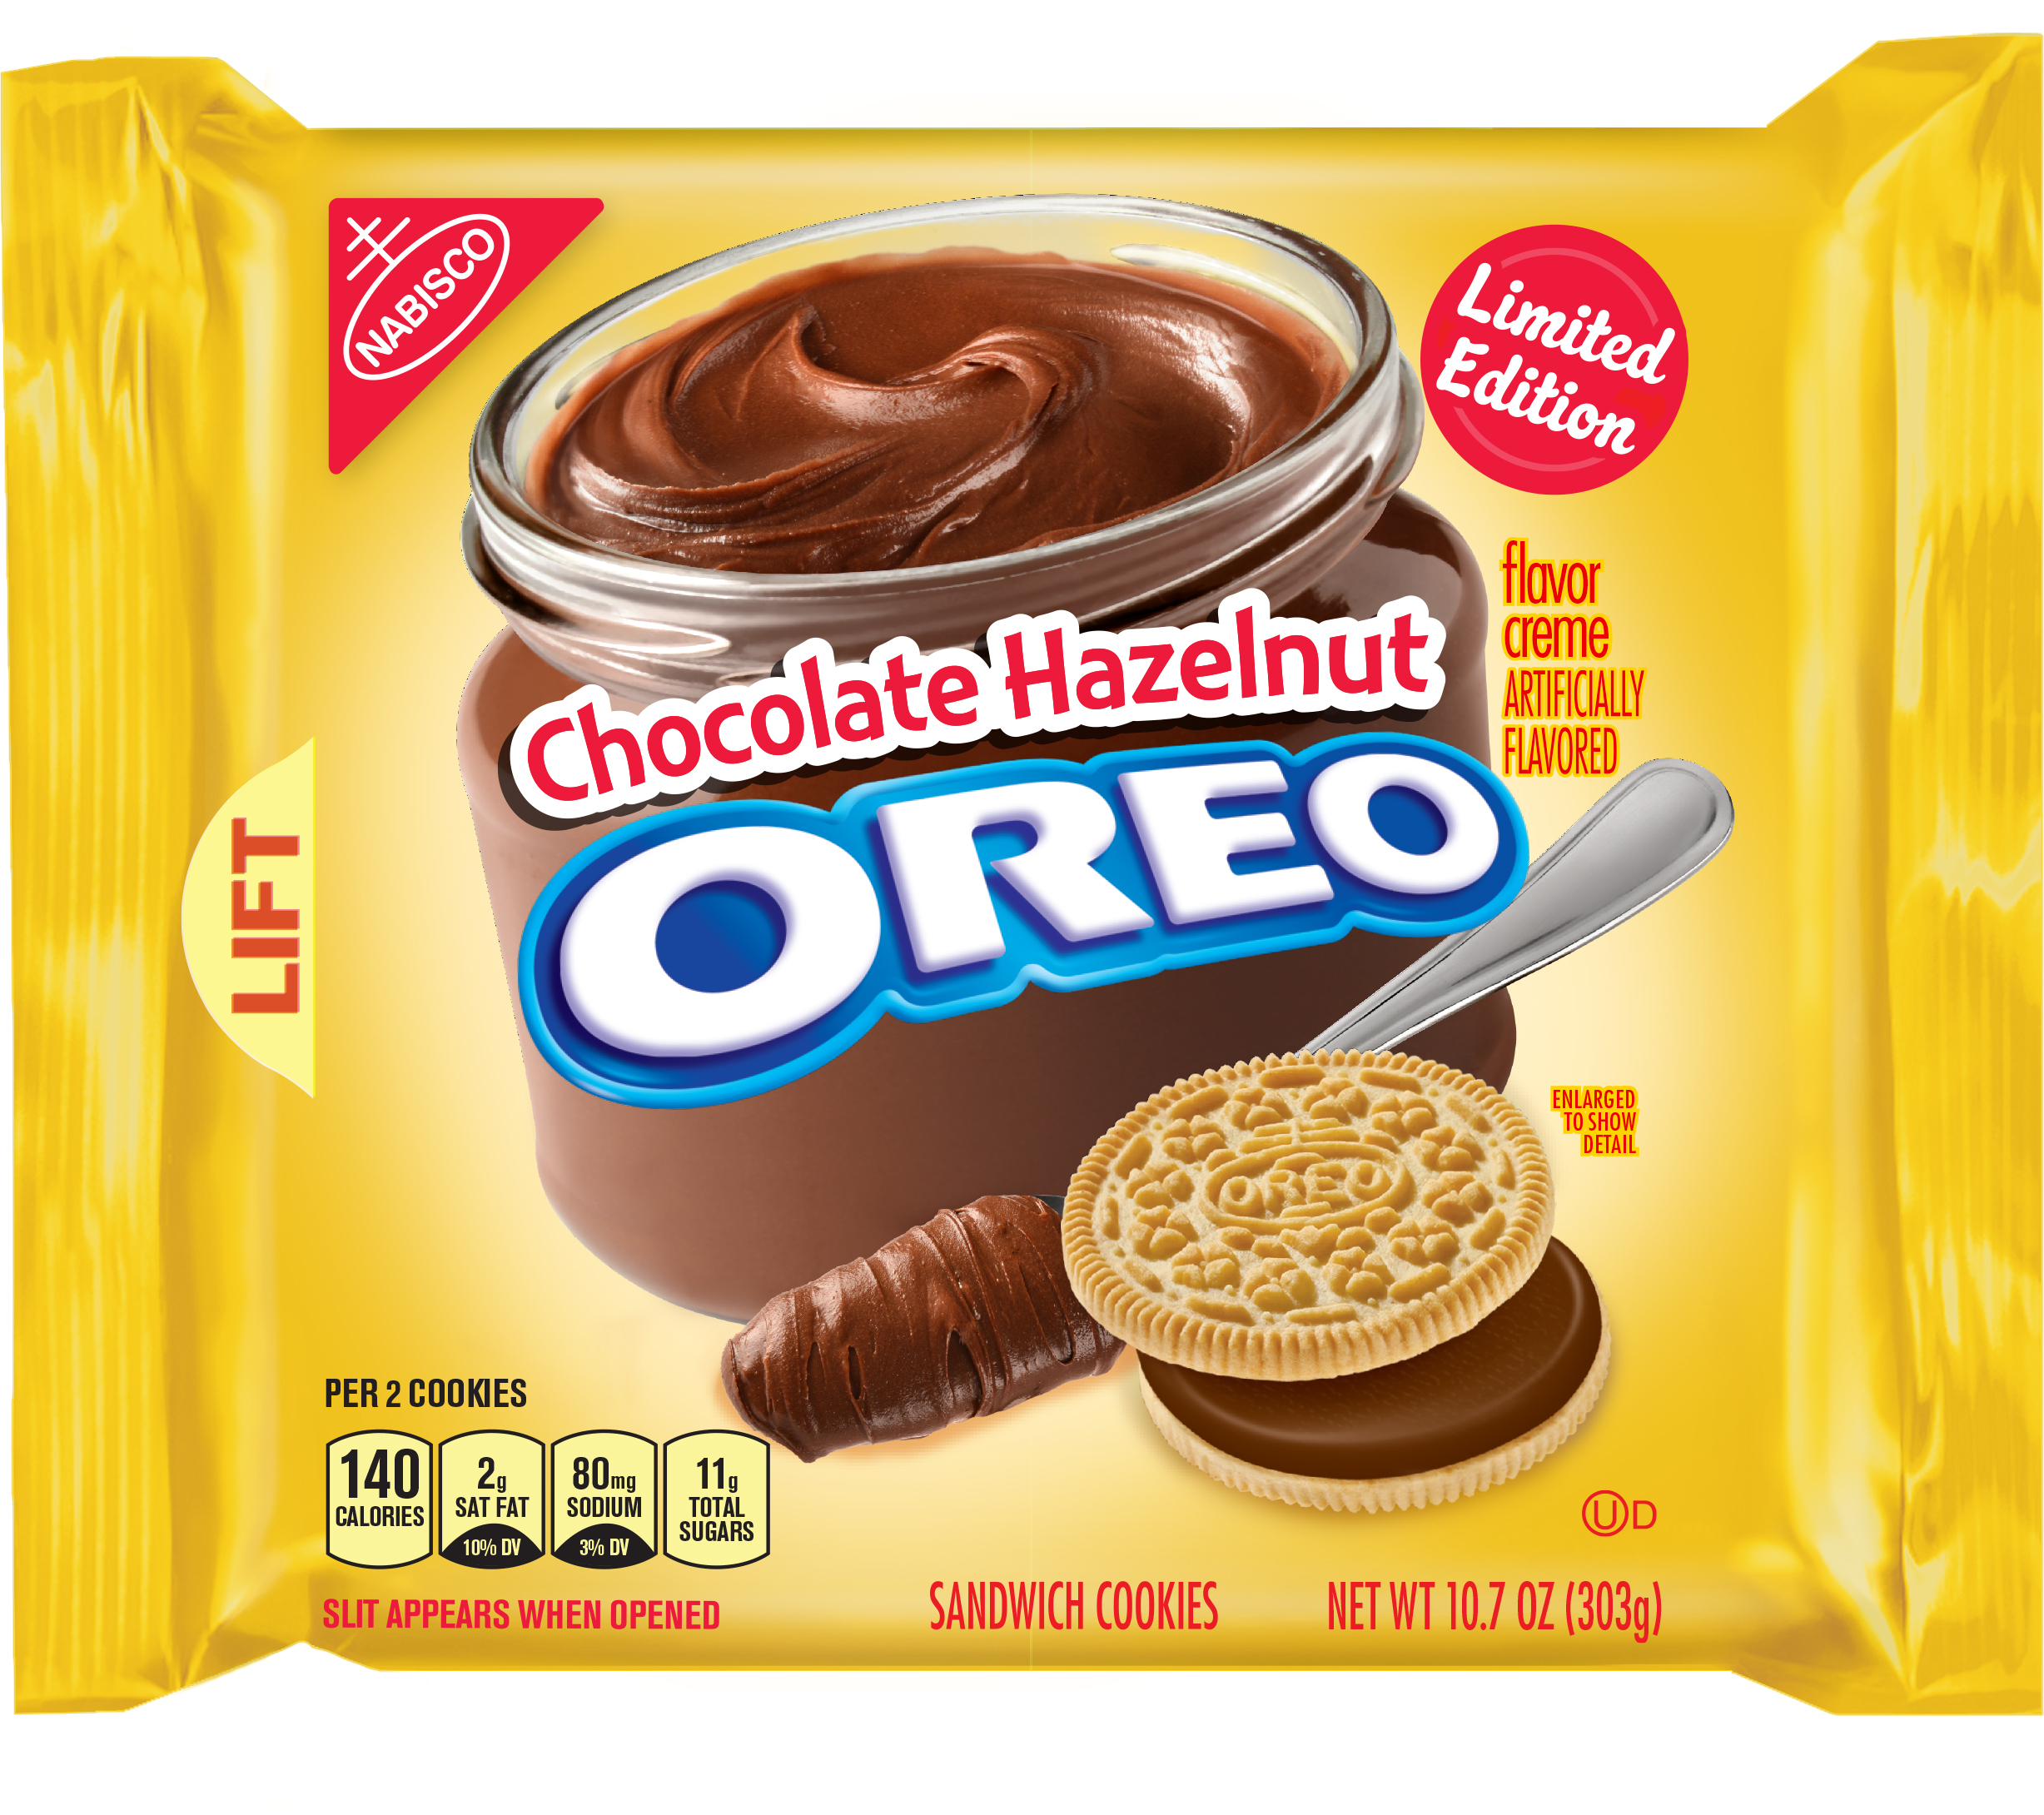 Oreo's chocolate hazelnut flavor is the ultimate treat for Nutella lovers 16